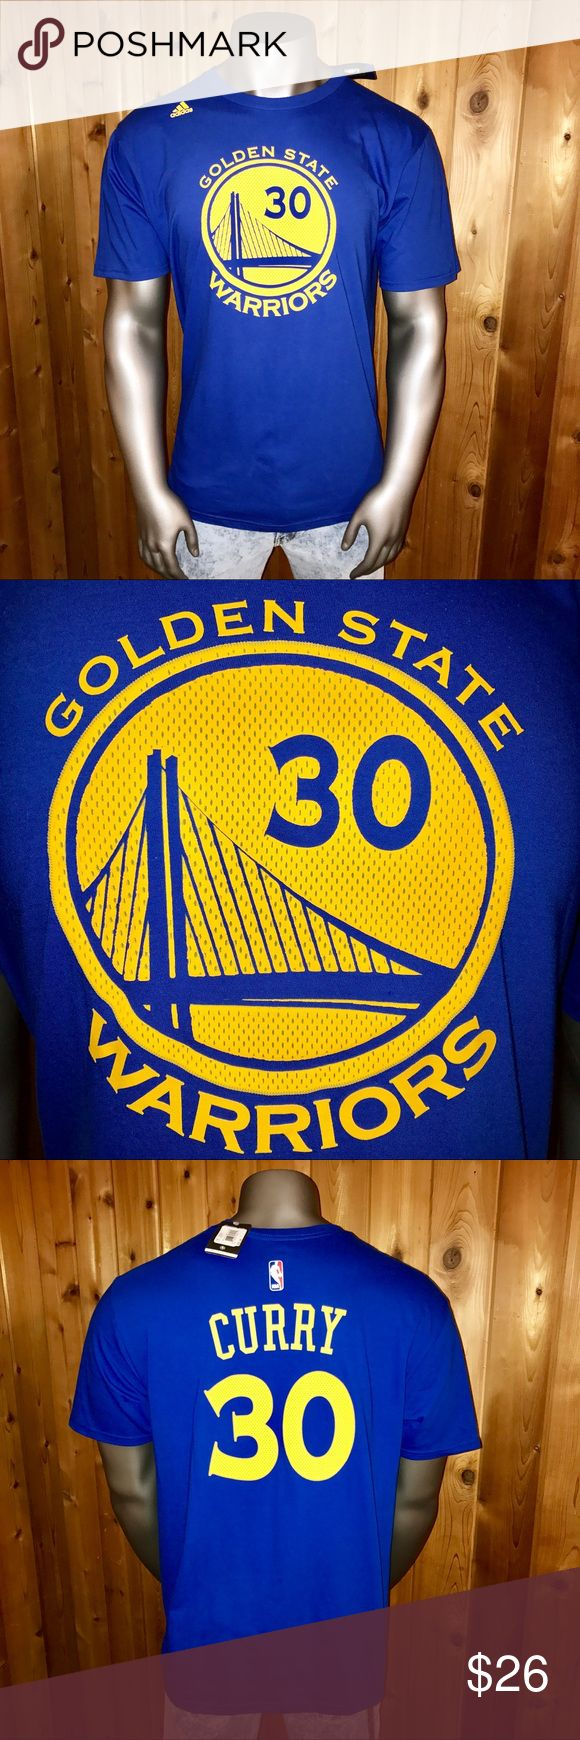 NWT! Adidas Warriors Basketball Steph Curry Shirt Brand New With Tags!  Size: U.S. Men's XL Color: Royal Blue Adidas Go-To Tee Official NBA & Golden State Warriors Basketball Team Apparel Stephen Curry #30 Regular Fit  T-Shirt comes from a smoke and pet free home  Thanks for looking! adidas Shirts Tees - Short Sleeve